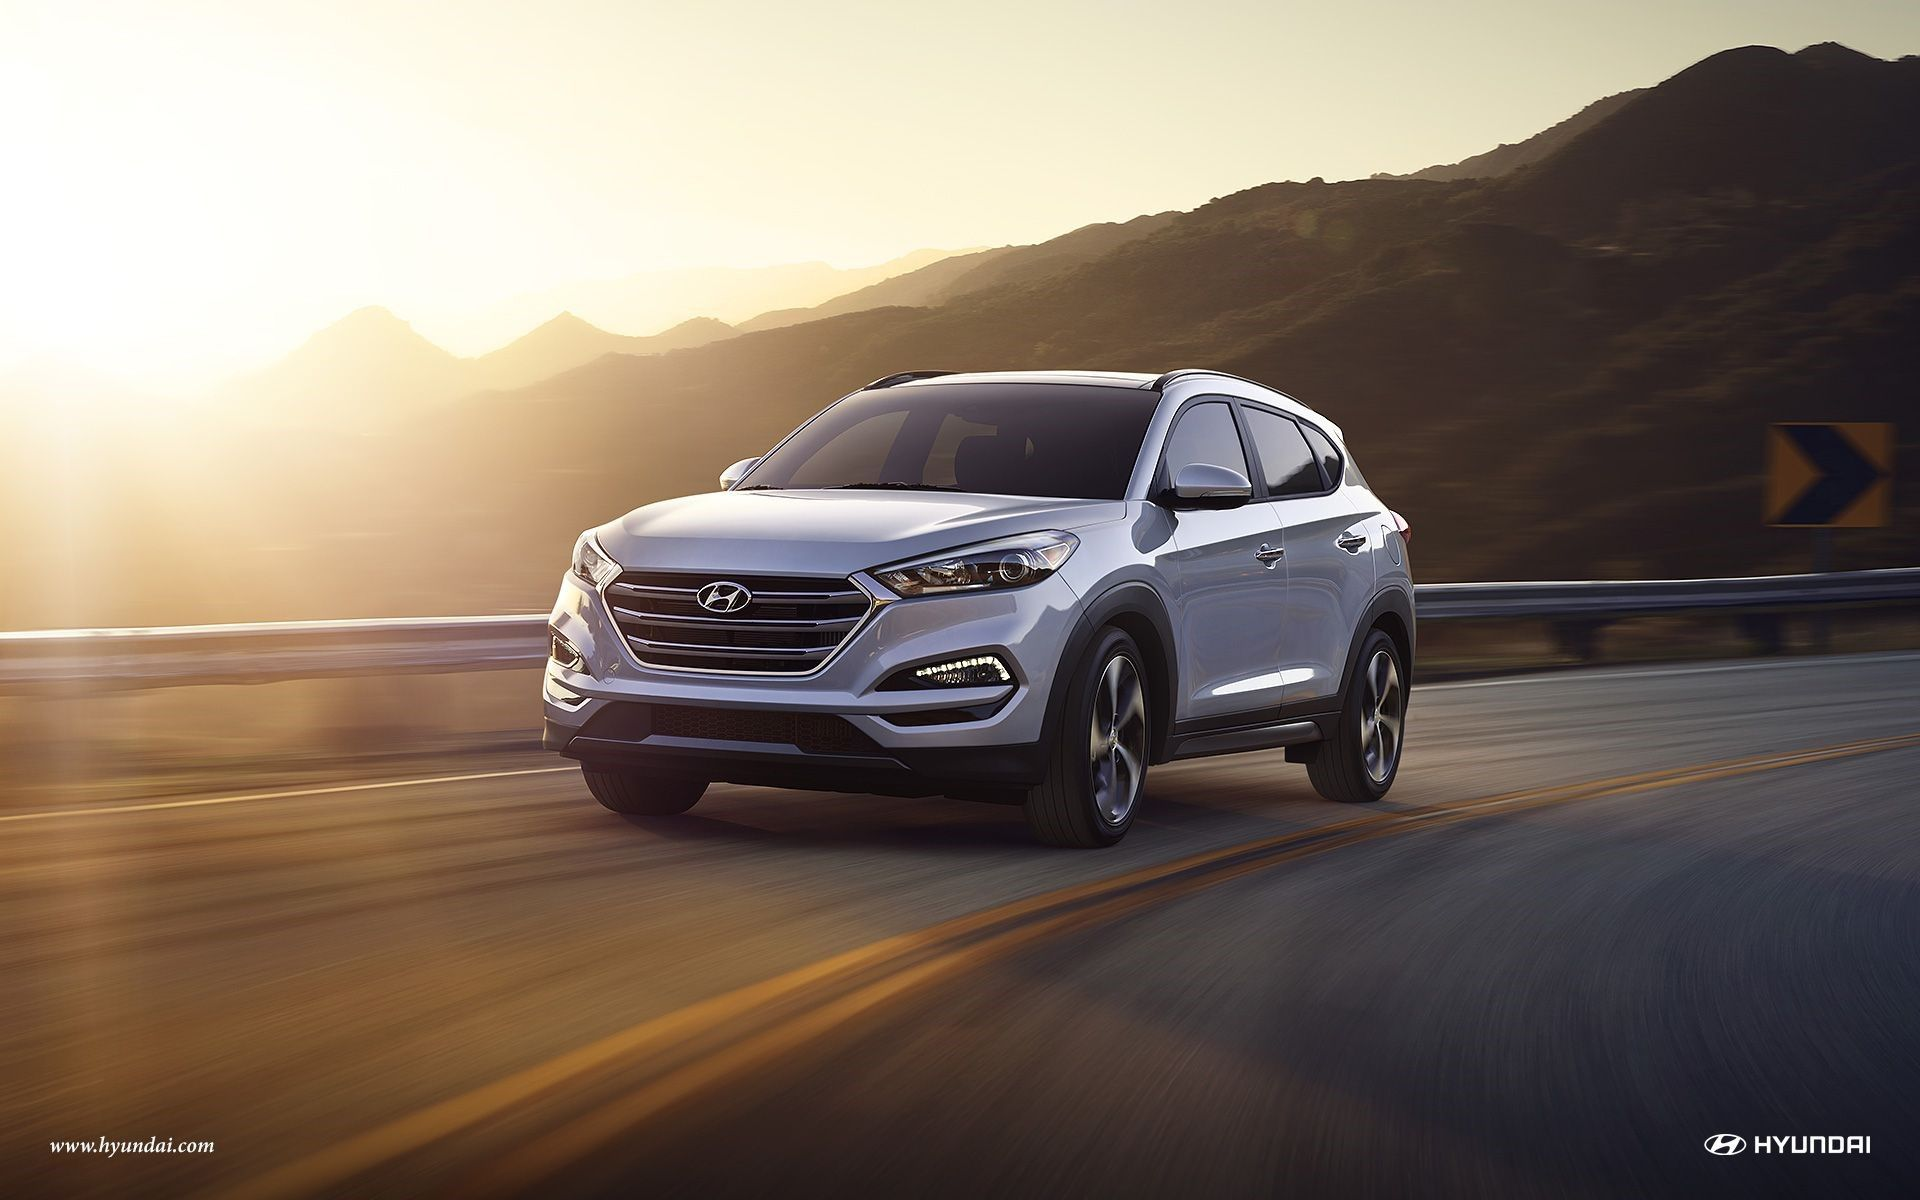 Dealerships Offer 2017 Hyundai Tucson Near Rio Rancho